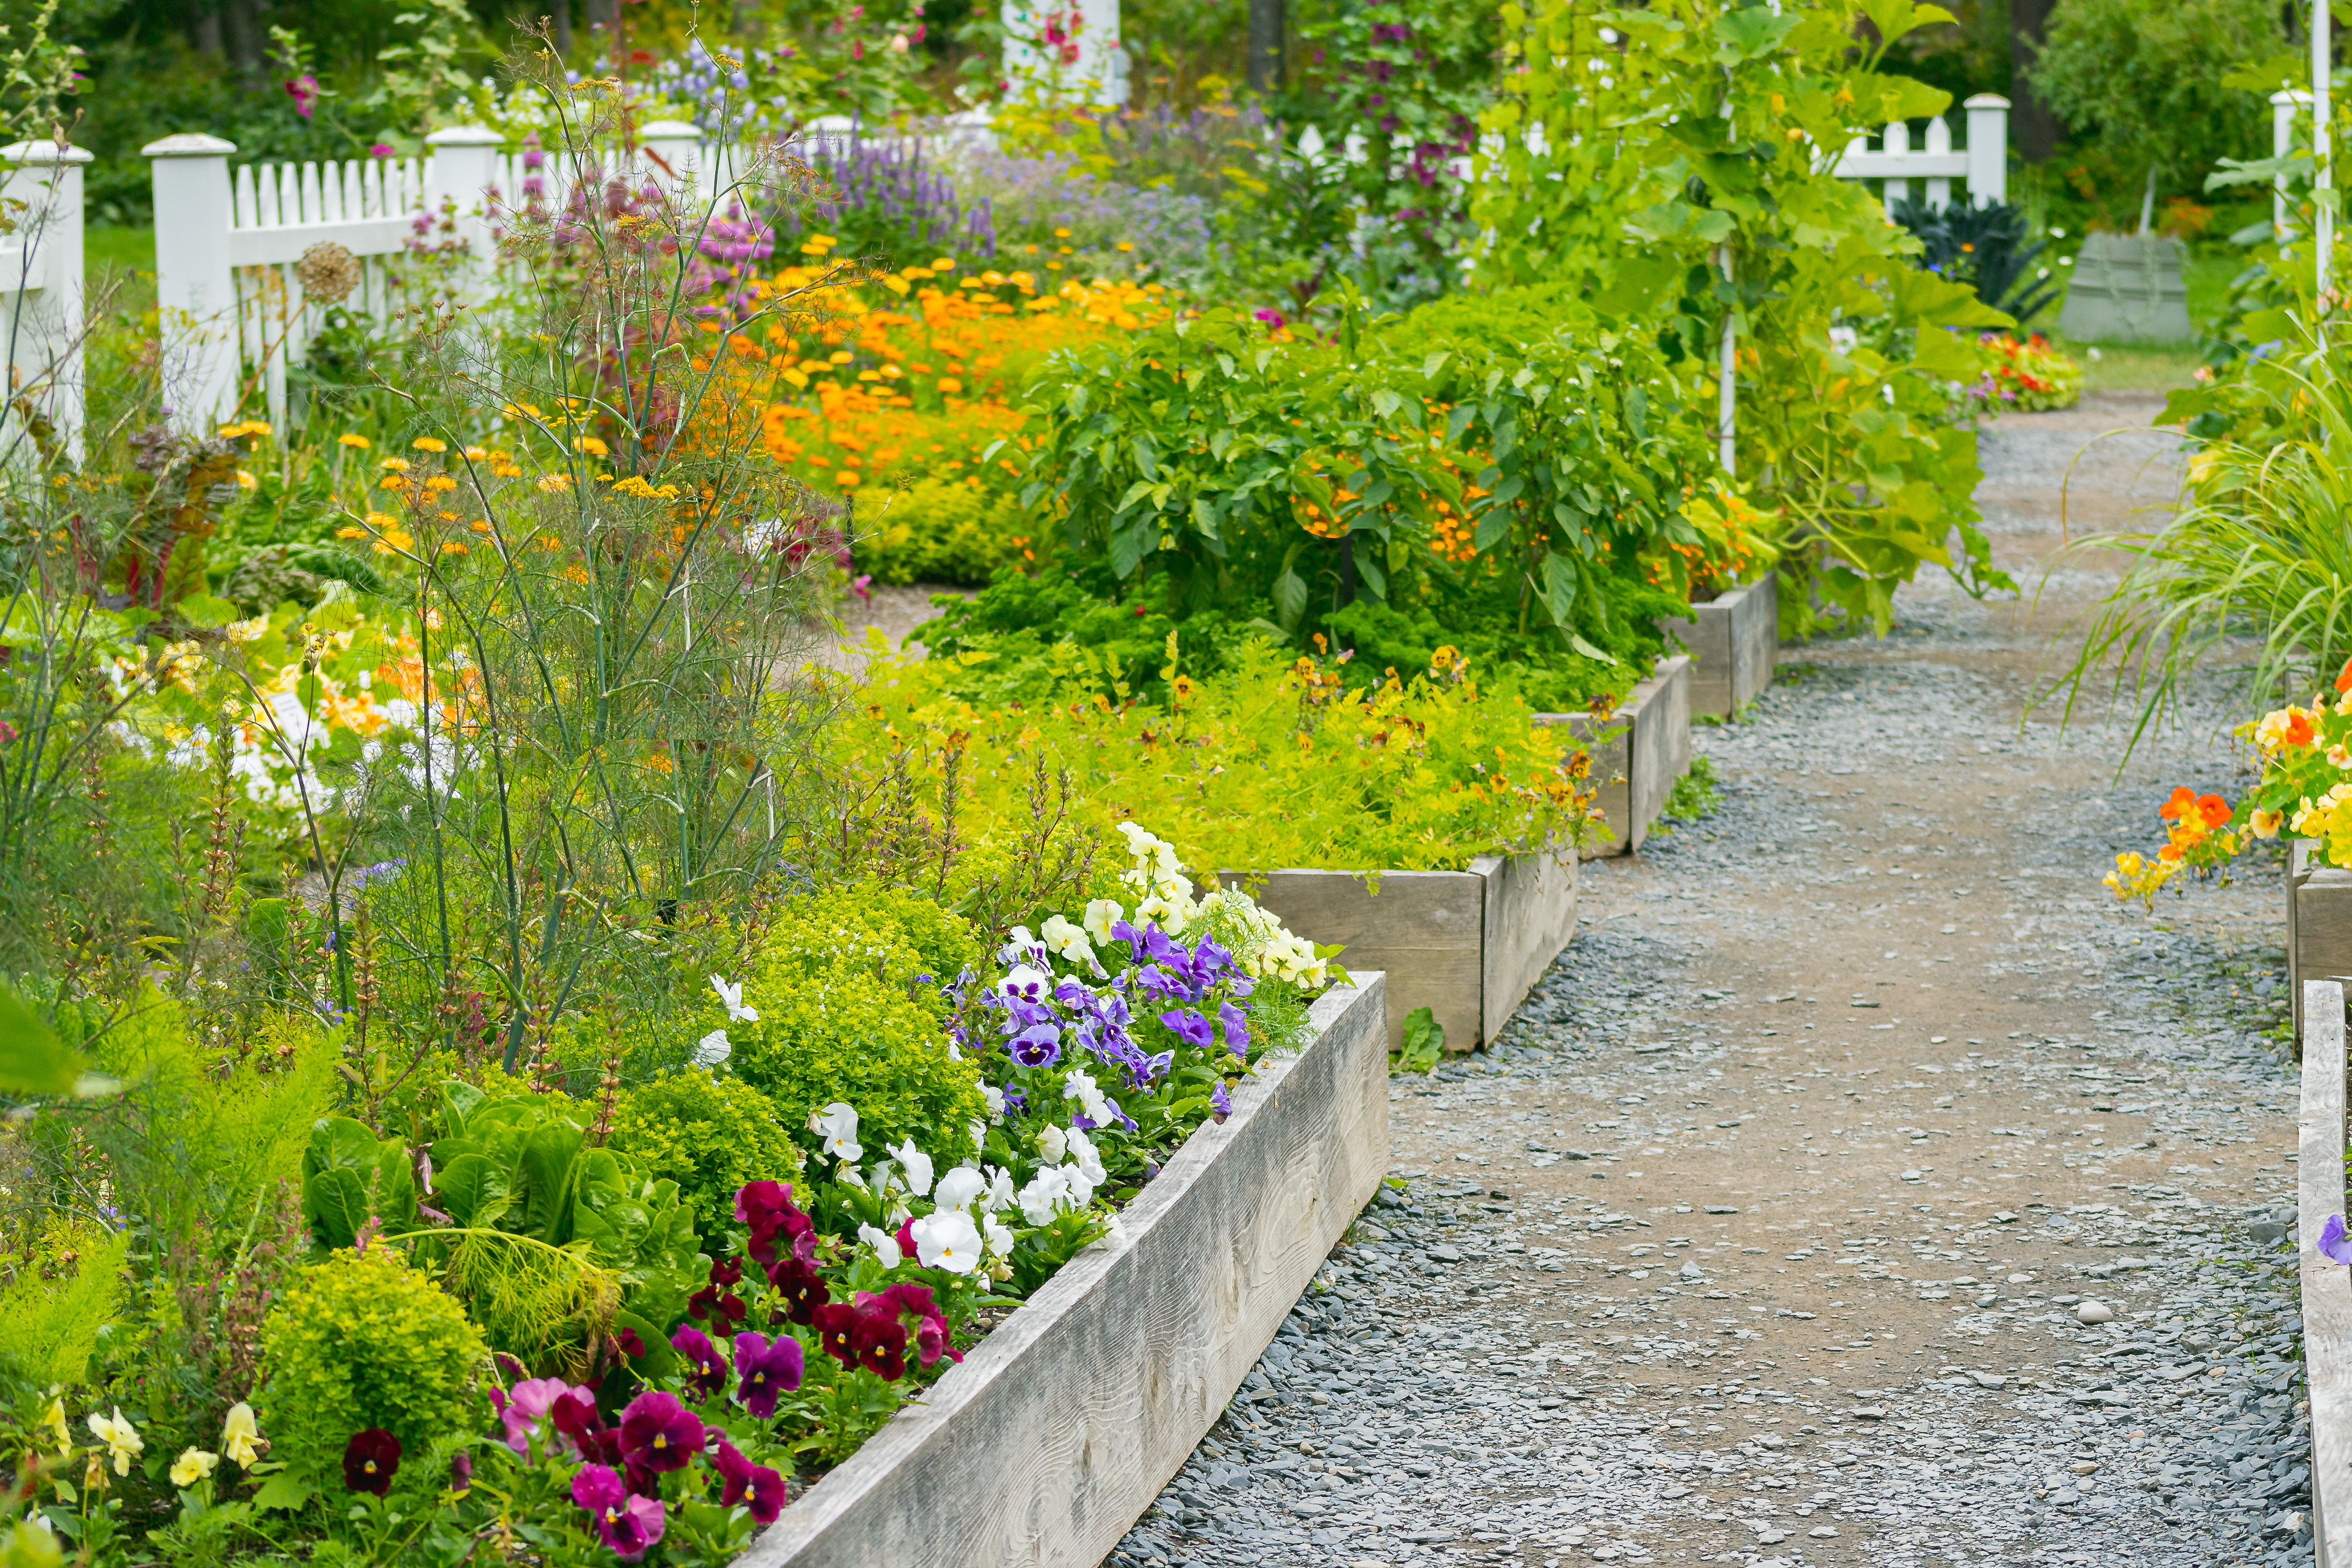 12 Things to Know About Starting a Garden From Scratch